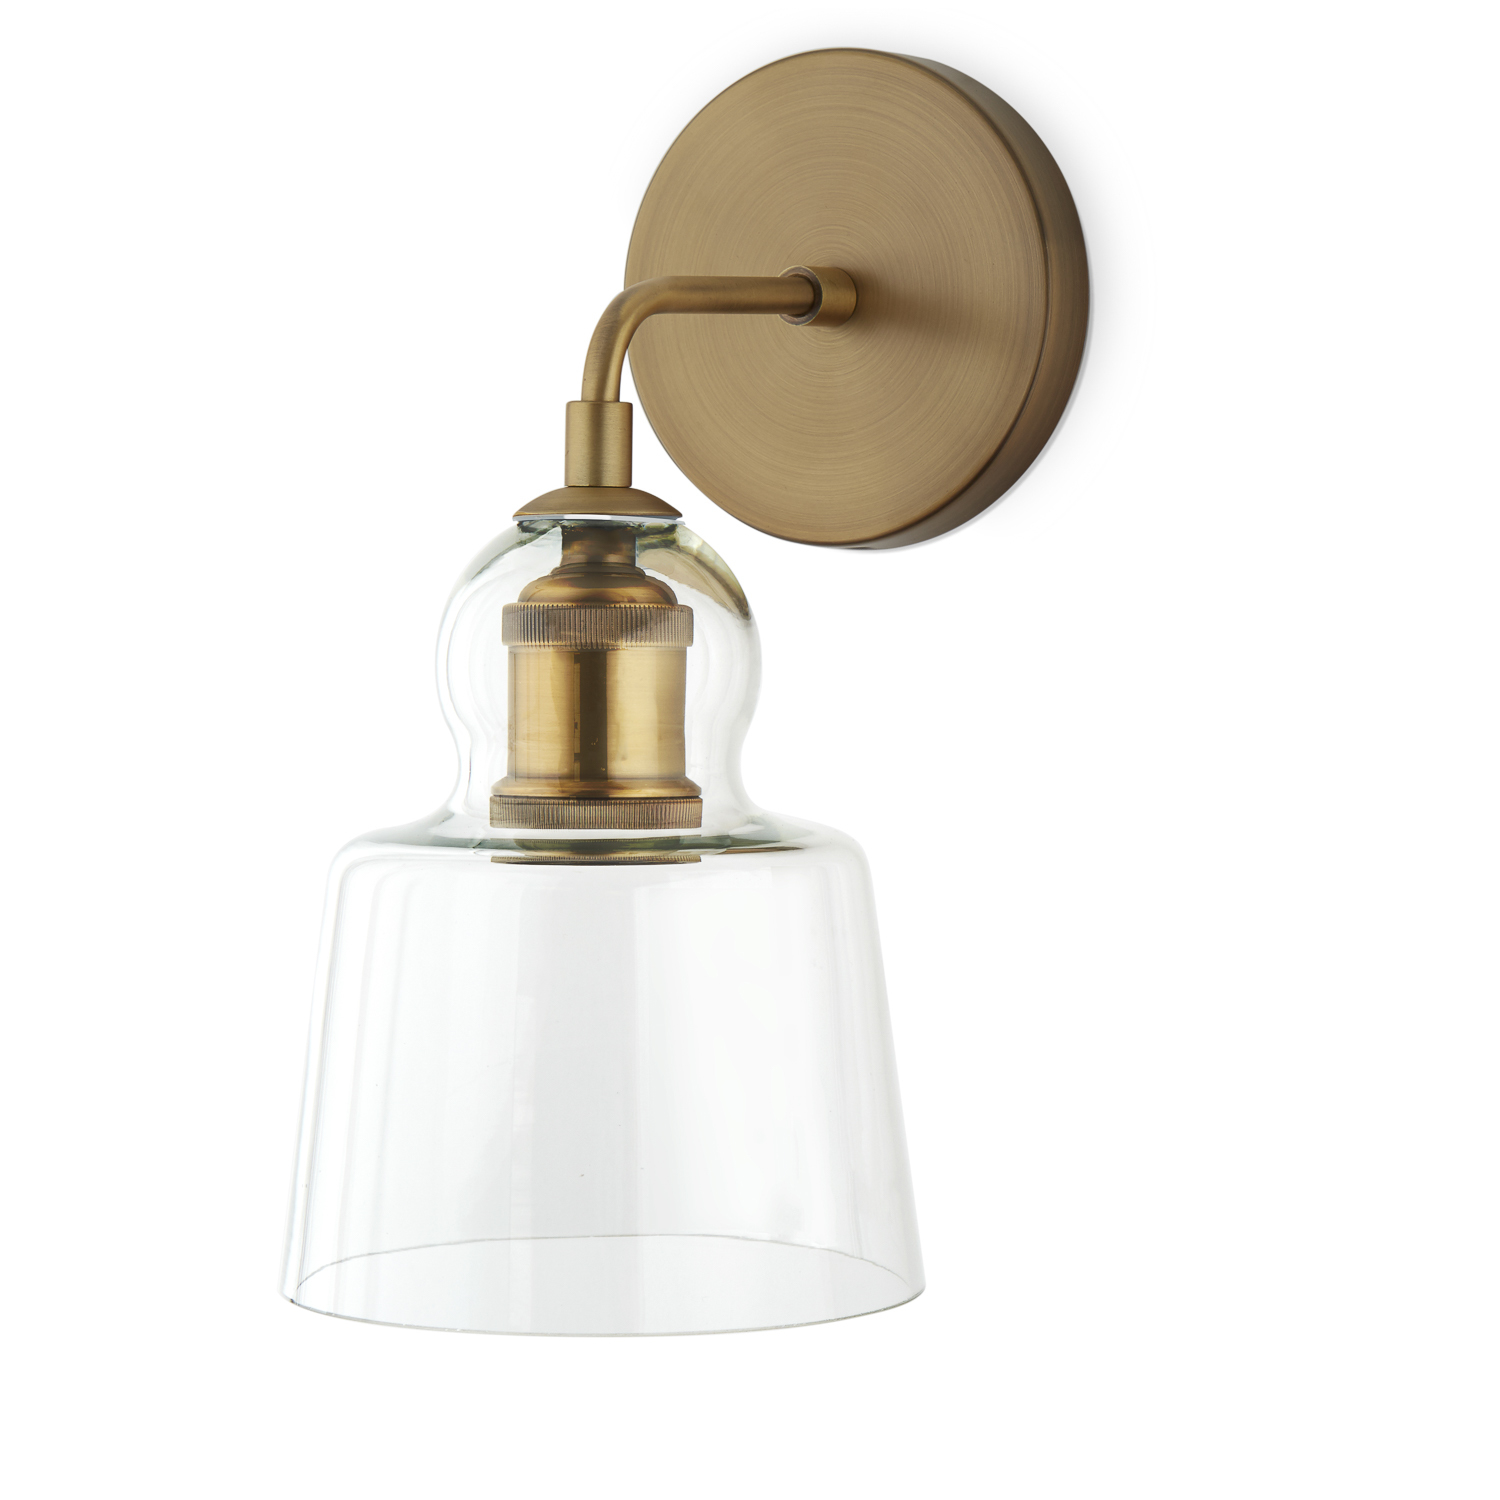 Lights.com | Wall Lights | Hoyt Wall Sconce with Tapered ... on Aged Brass Wall Sconce id=49869